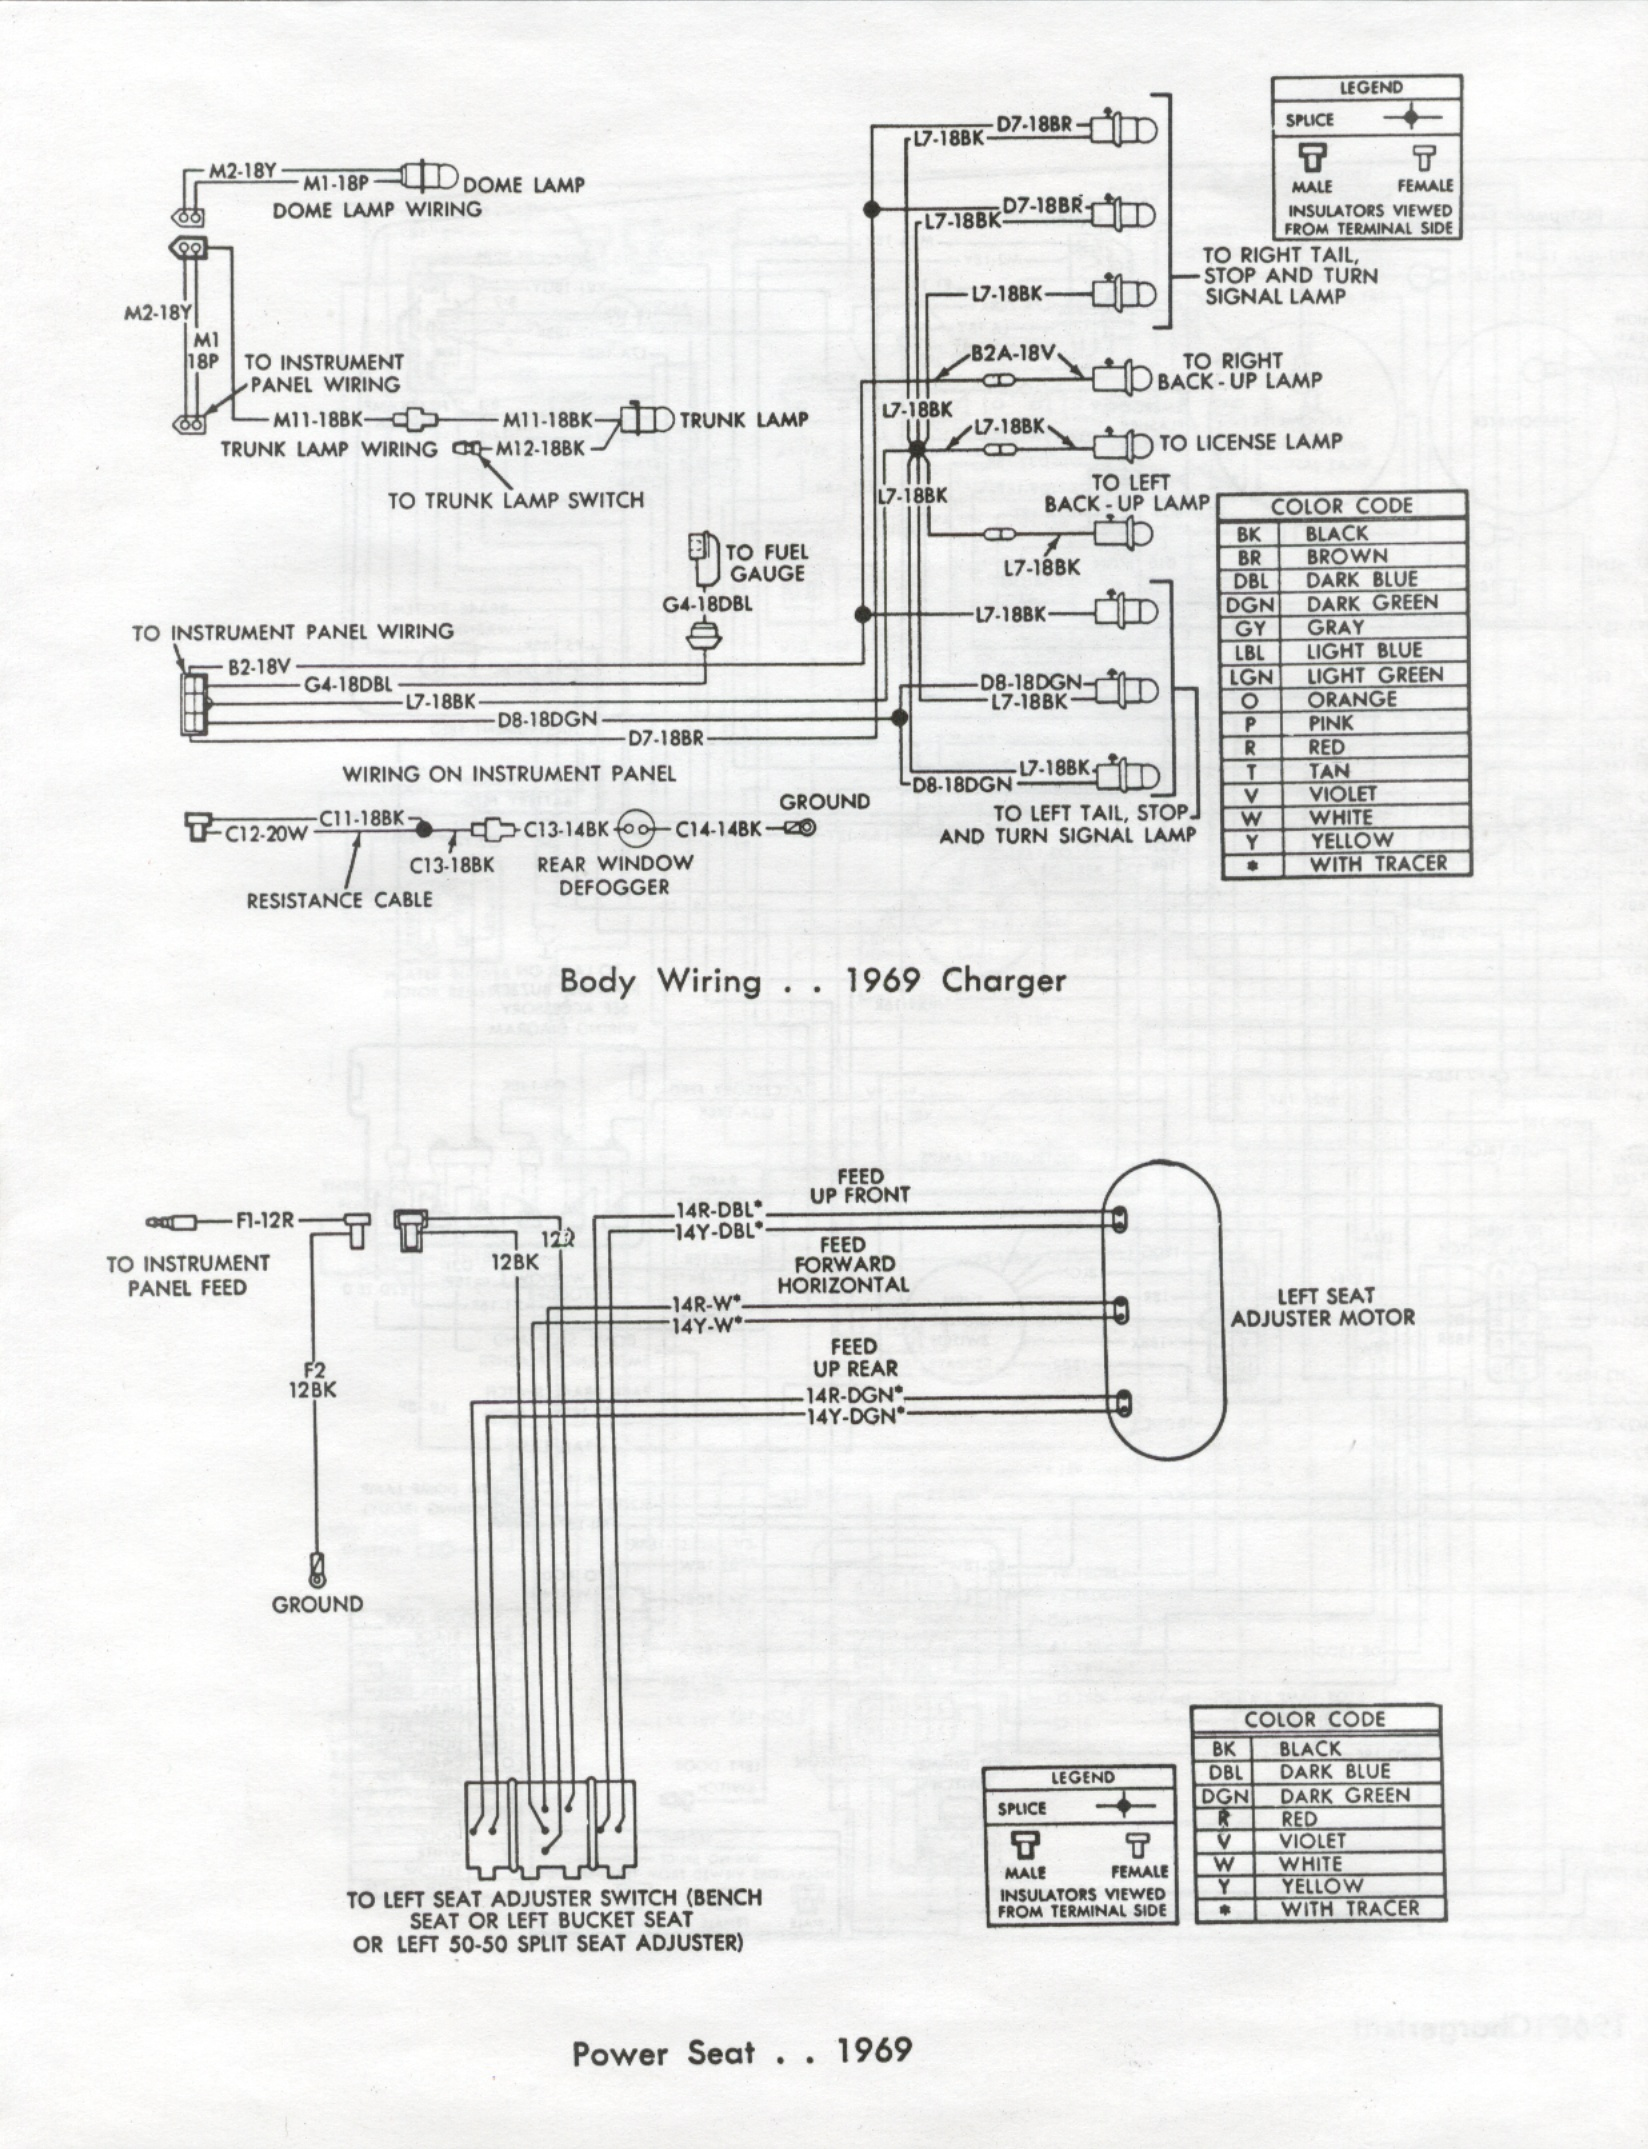 69 Charger Wiring Diagram